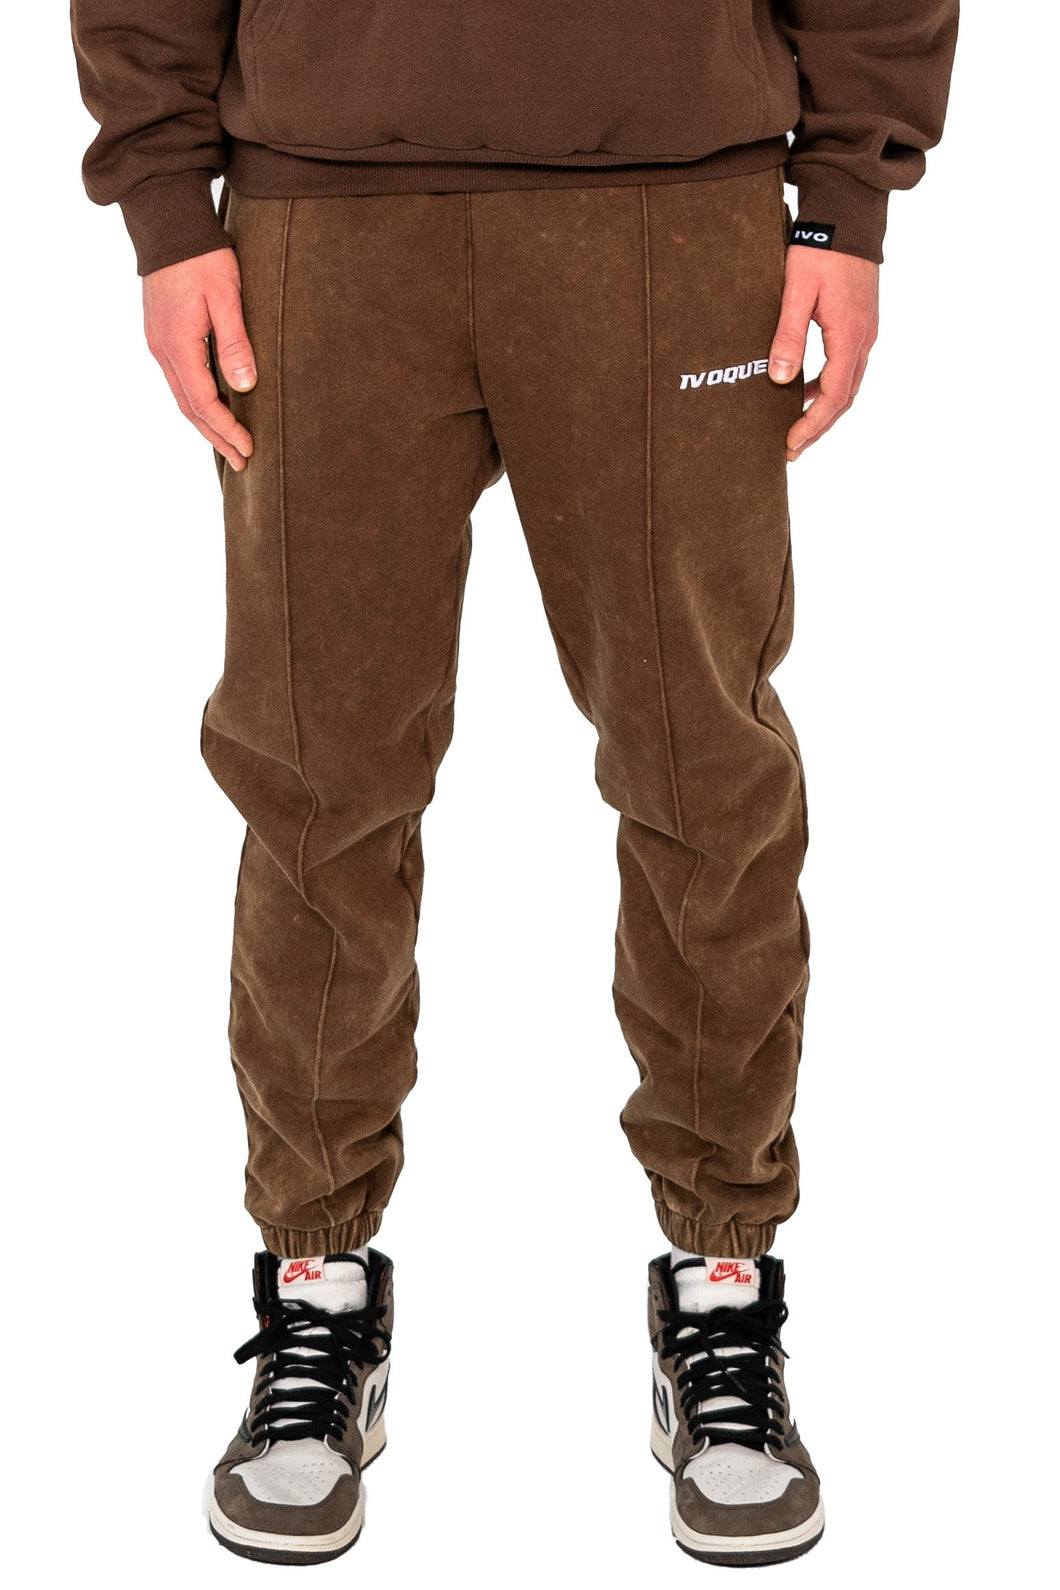 JOGGER PANTS BROWN WASHED